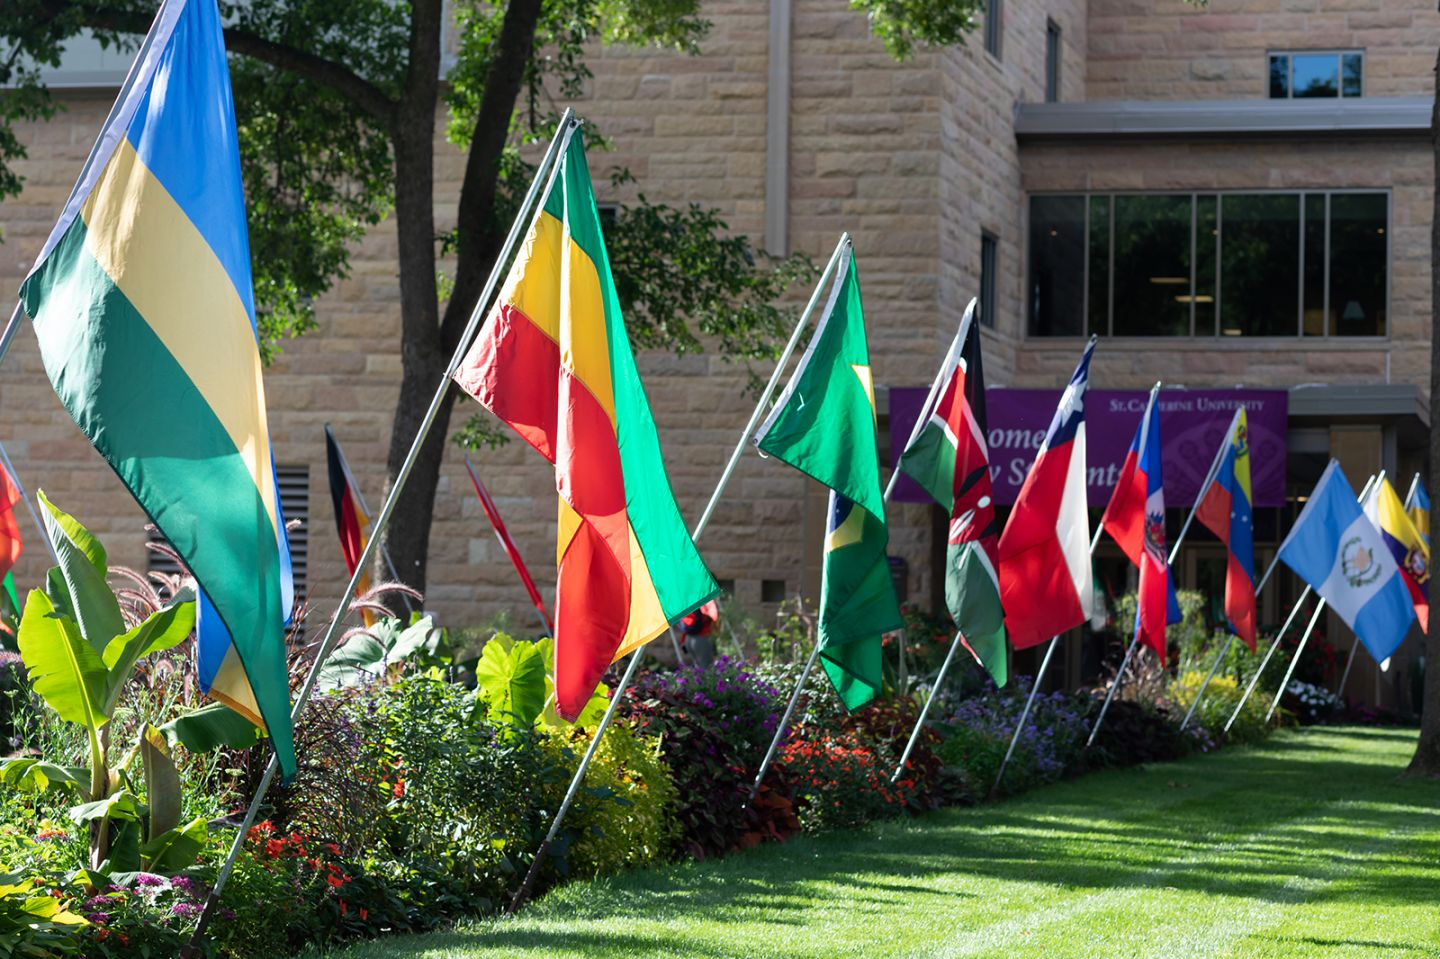 International flags symbolizing connections to international communities